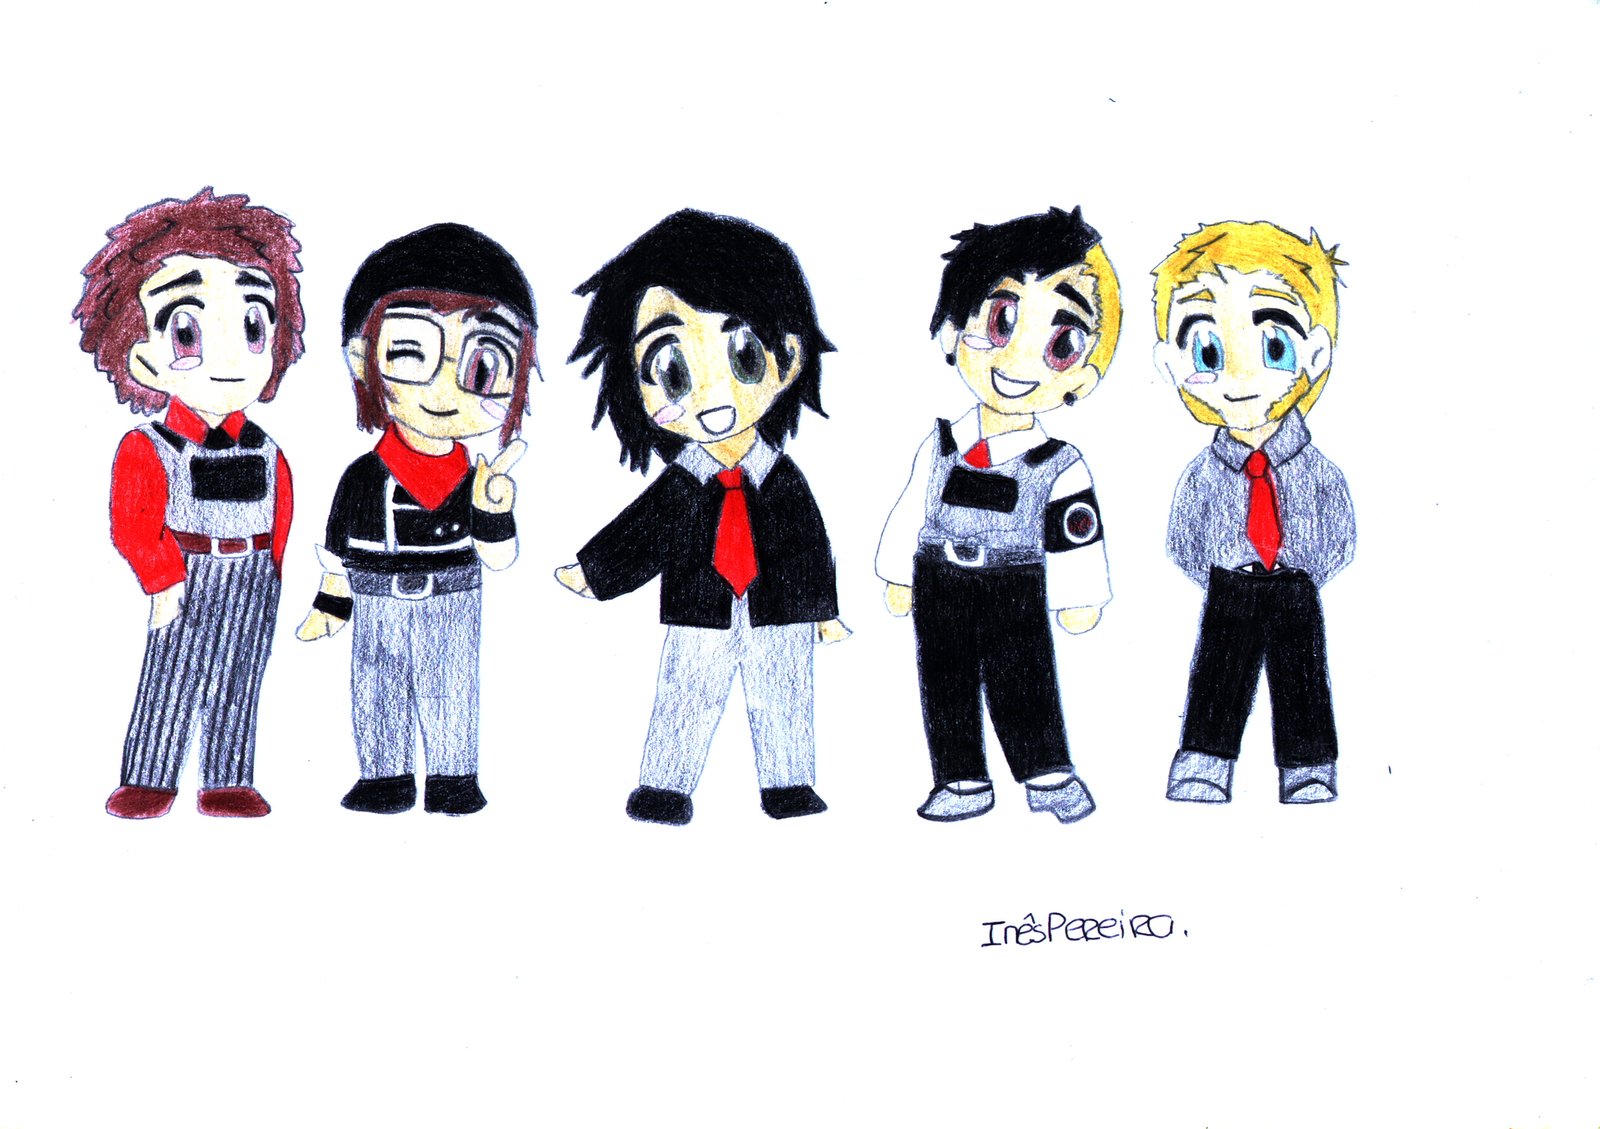 It's just an image of Magic Mcr Cartoon Drawing